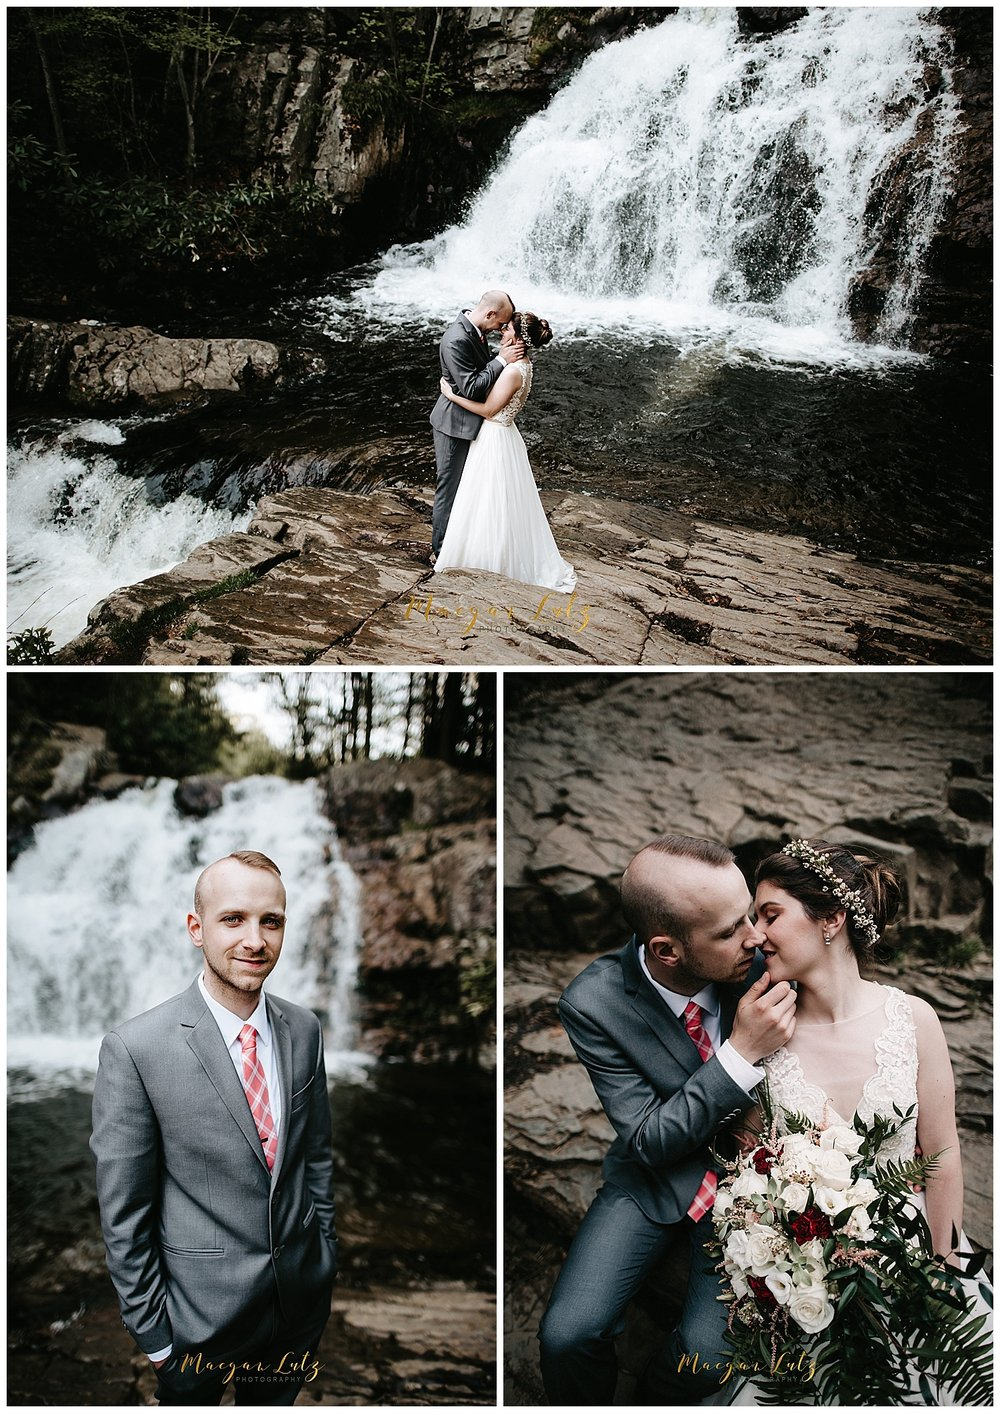 NEPA-wedding-photographer-elopement-at-hickory-run-hawk-falls-waterfall_0022.jpg